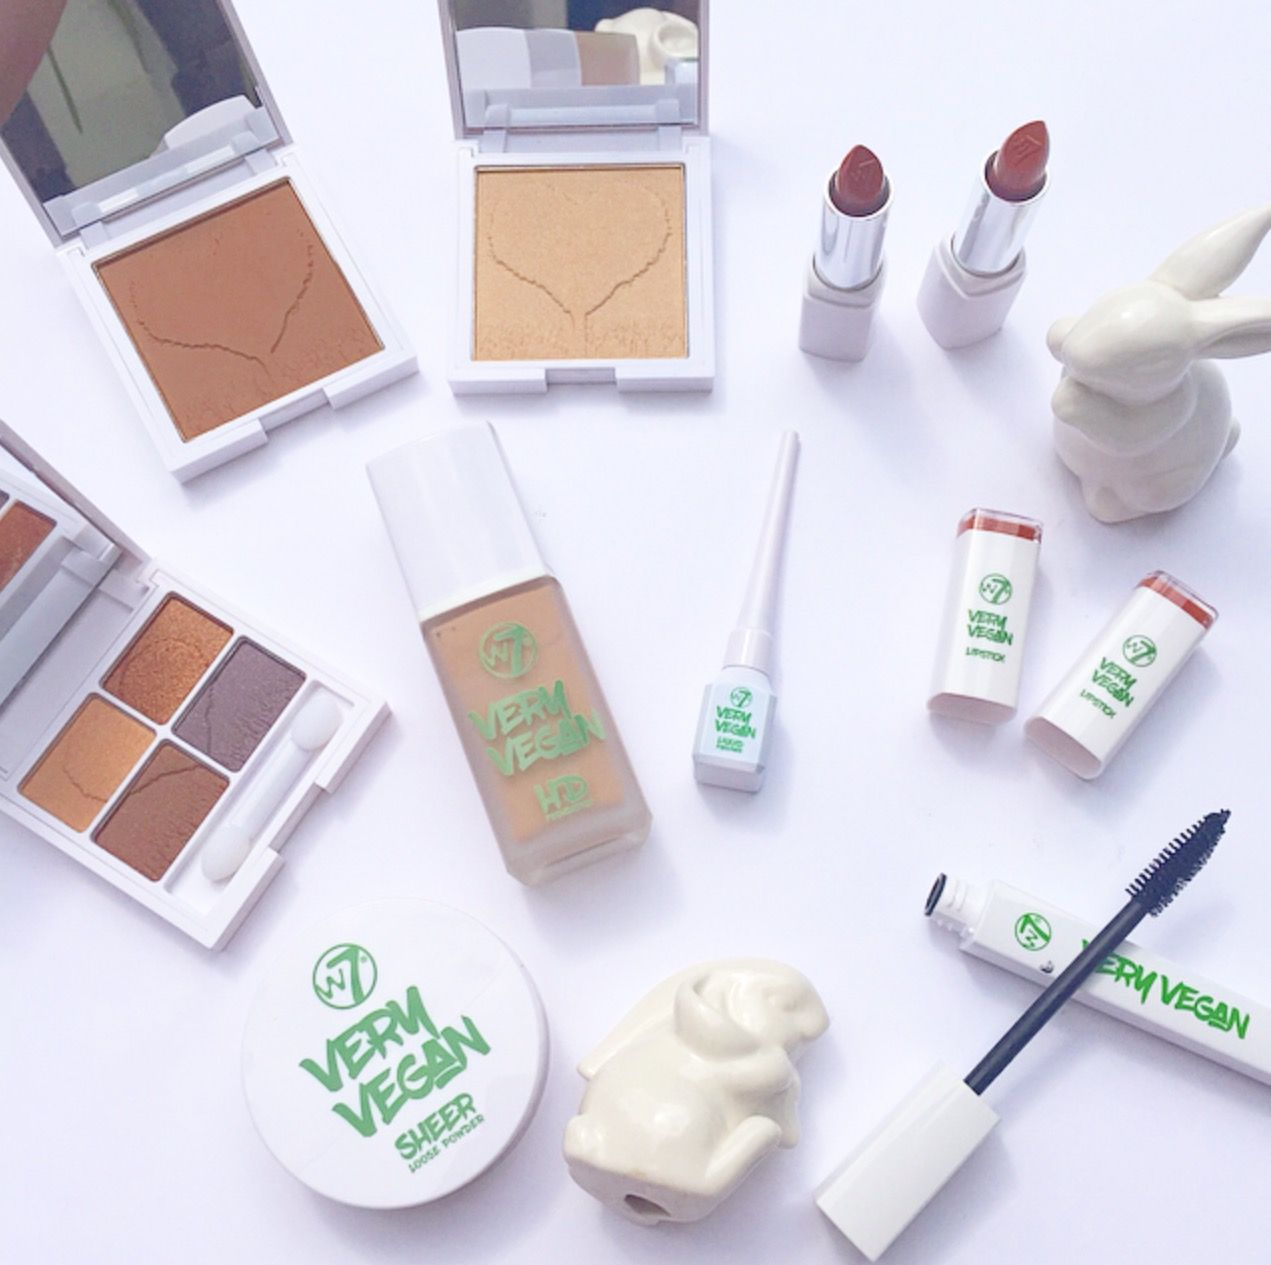 W7 Very Vegan Makeup Australia Reviews Vegan makeup